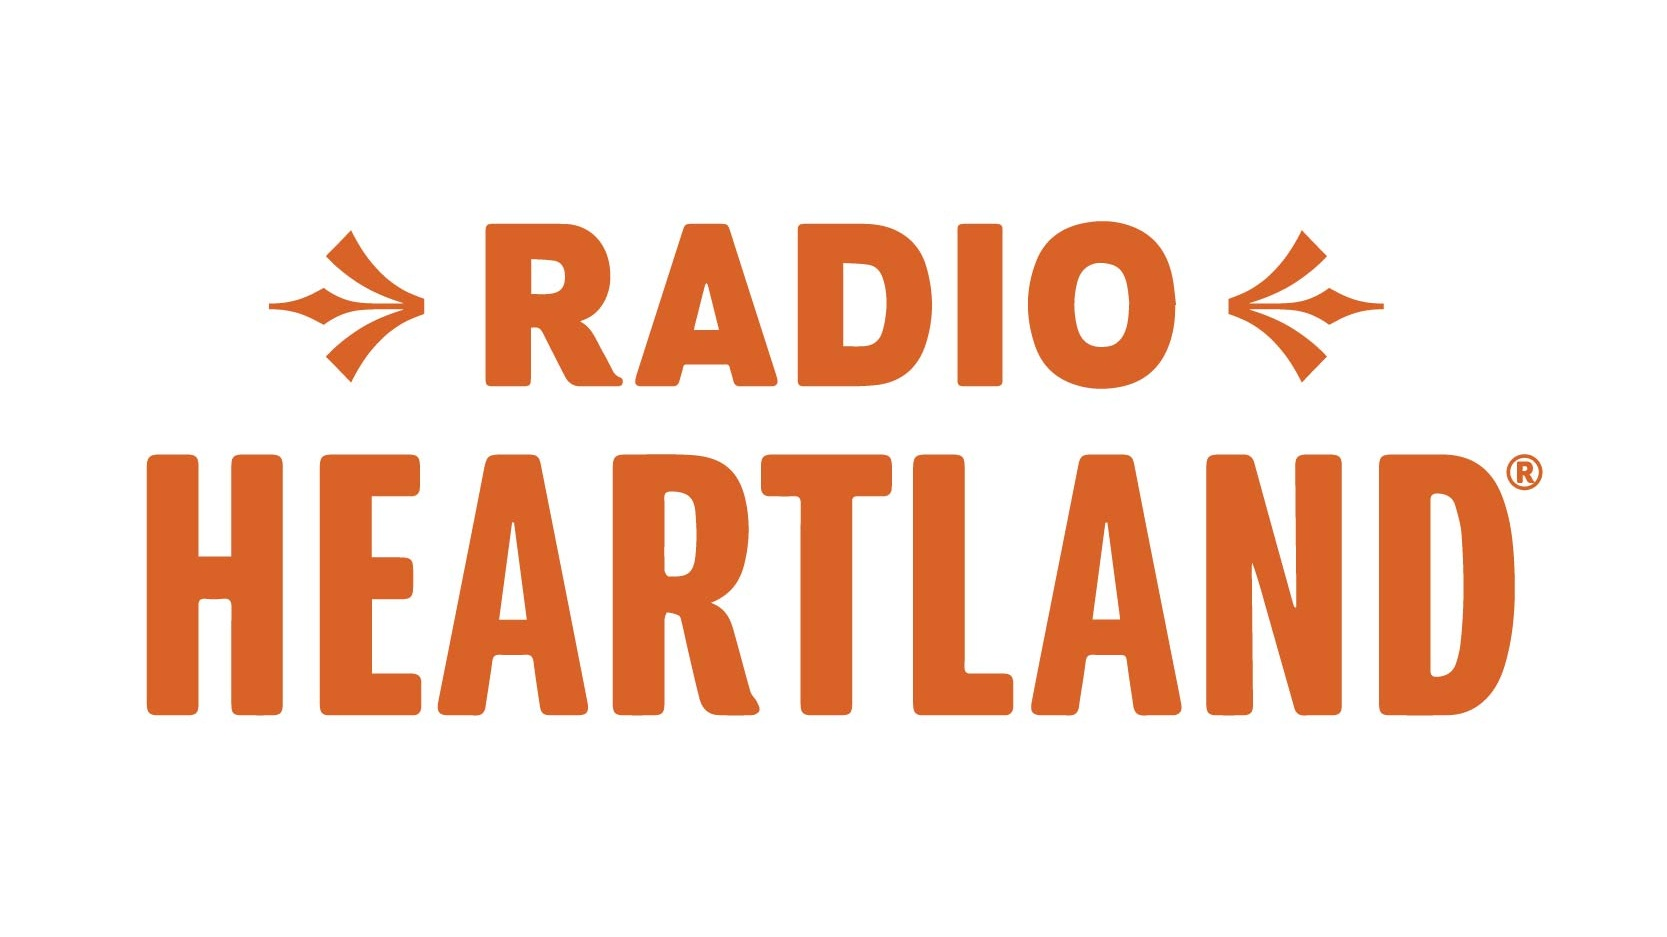 Radio_Heartland_wordmark+%28002%29.jpg